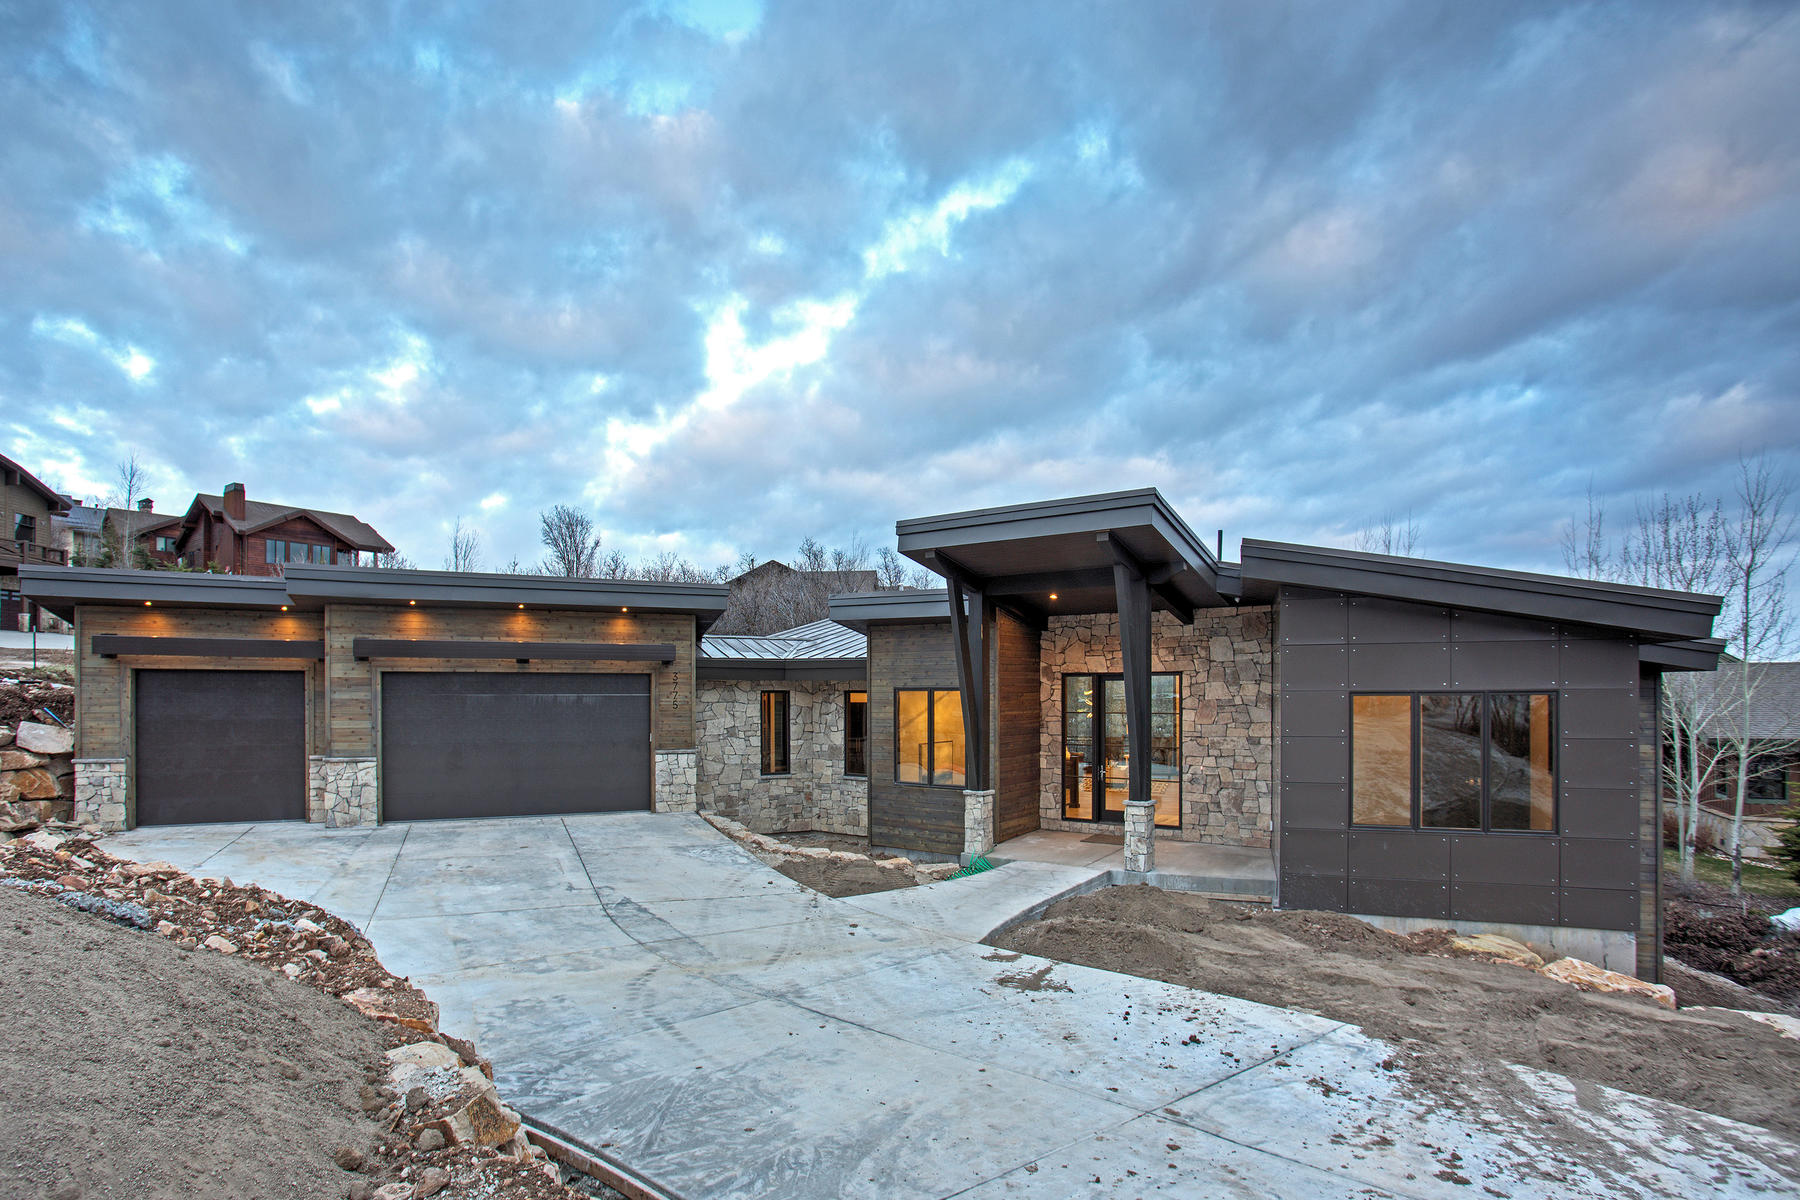 独户住宅 为 销售 在 New Contemporary Construction in Royal Oaks at Deer Valley 3775 Sun Ridge Dr 帕克城, 犹他州, 84060 美国